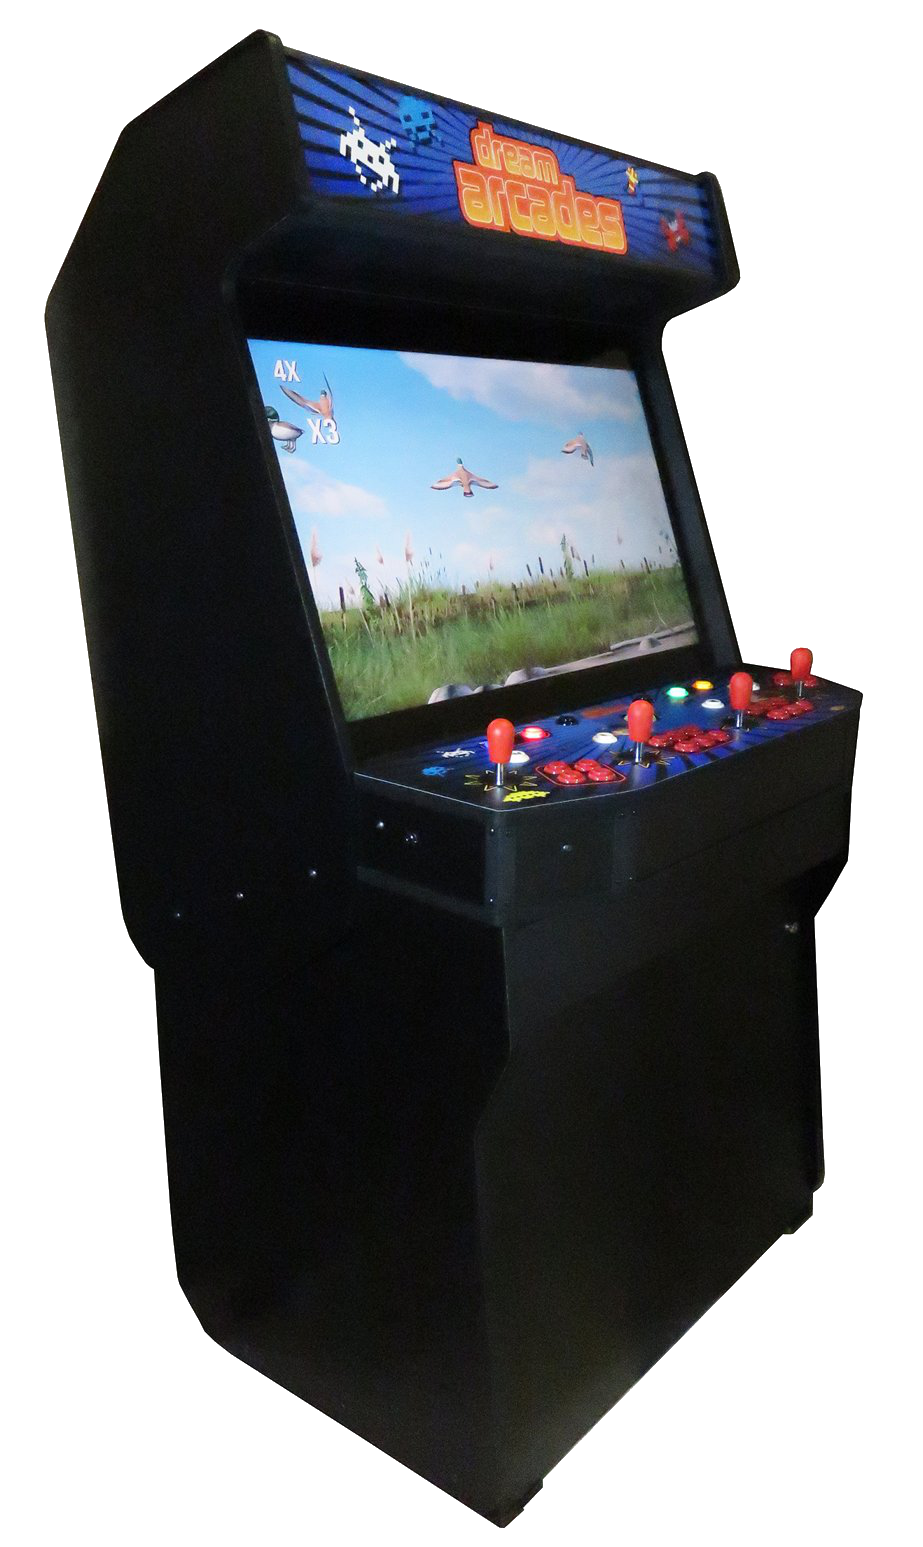 dreamcade vision 40 4 player arcade cabinet. Black Bedroom Furniture Sets. Home Design Ideas